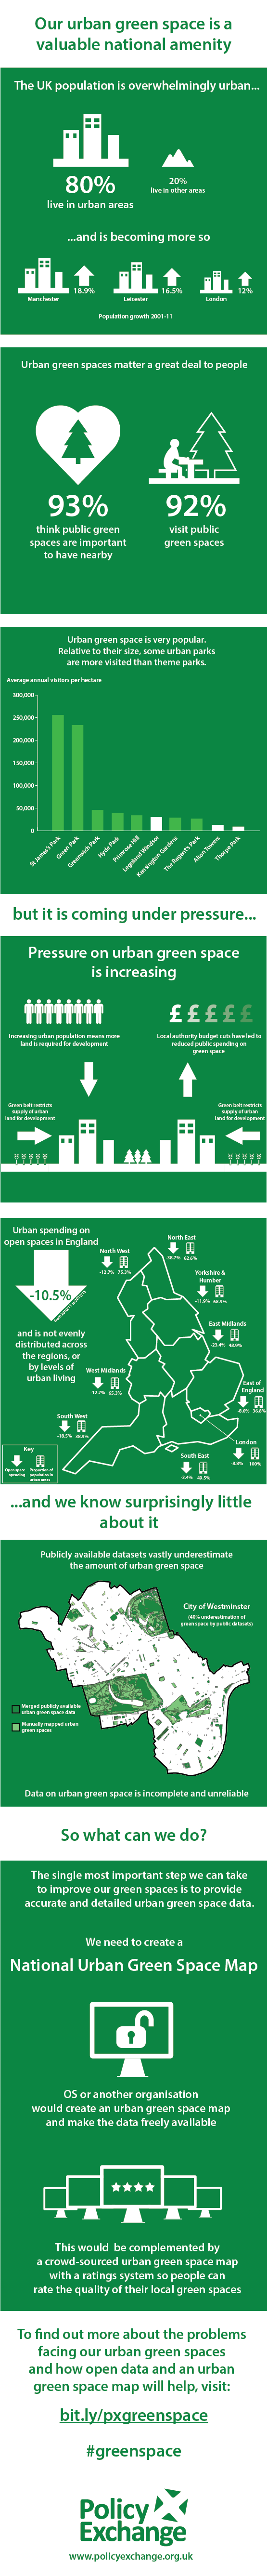 Our Urban Green Space A Caluable National Amenity [Infographic]